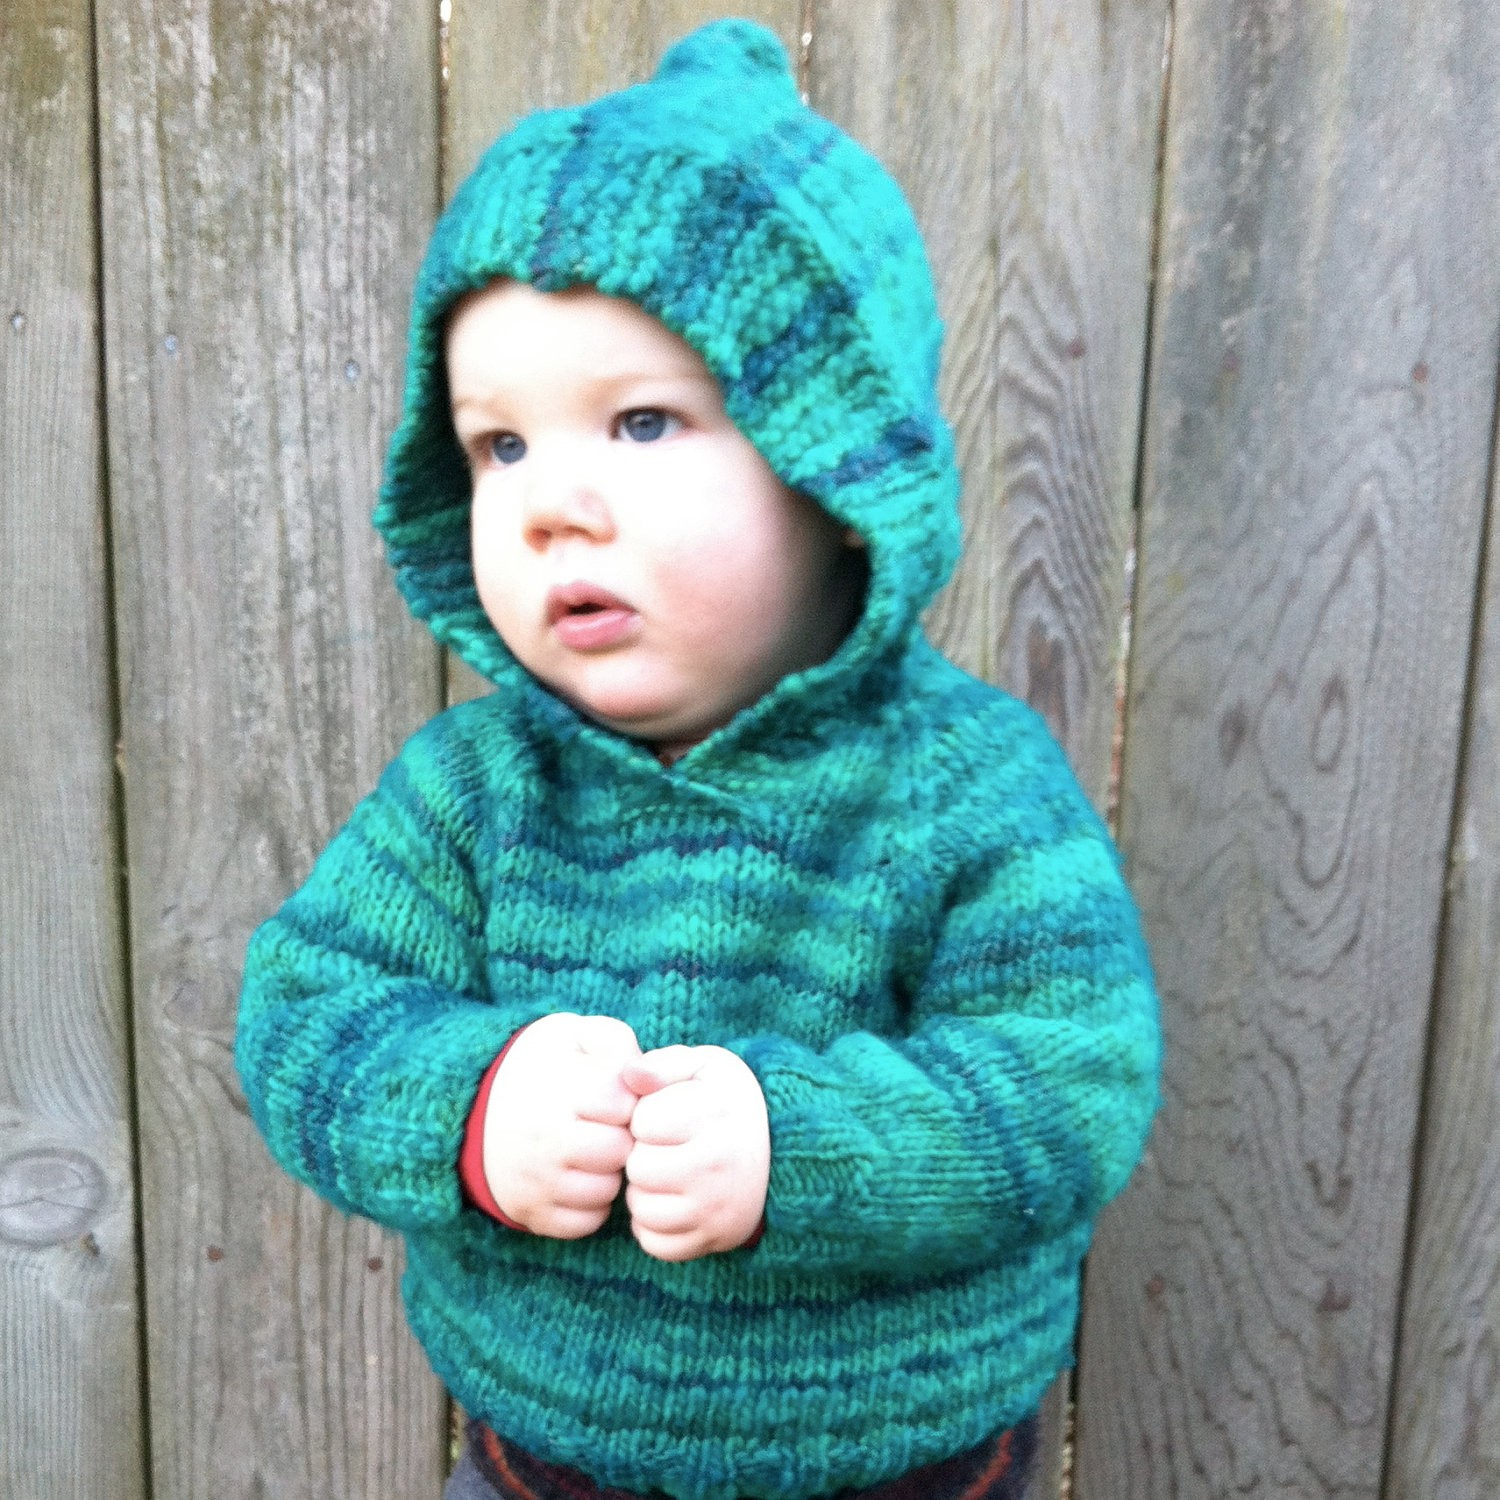 Knitting Patterns For Baby Vests : Hooded Knit Sweater Patterns A Knitting Blog